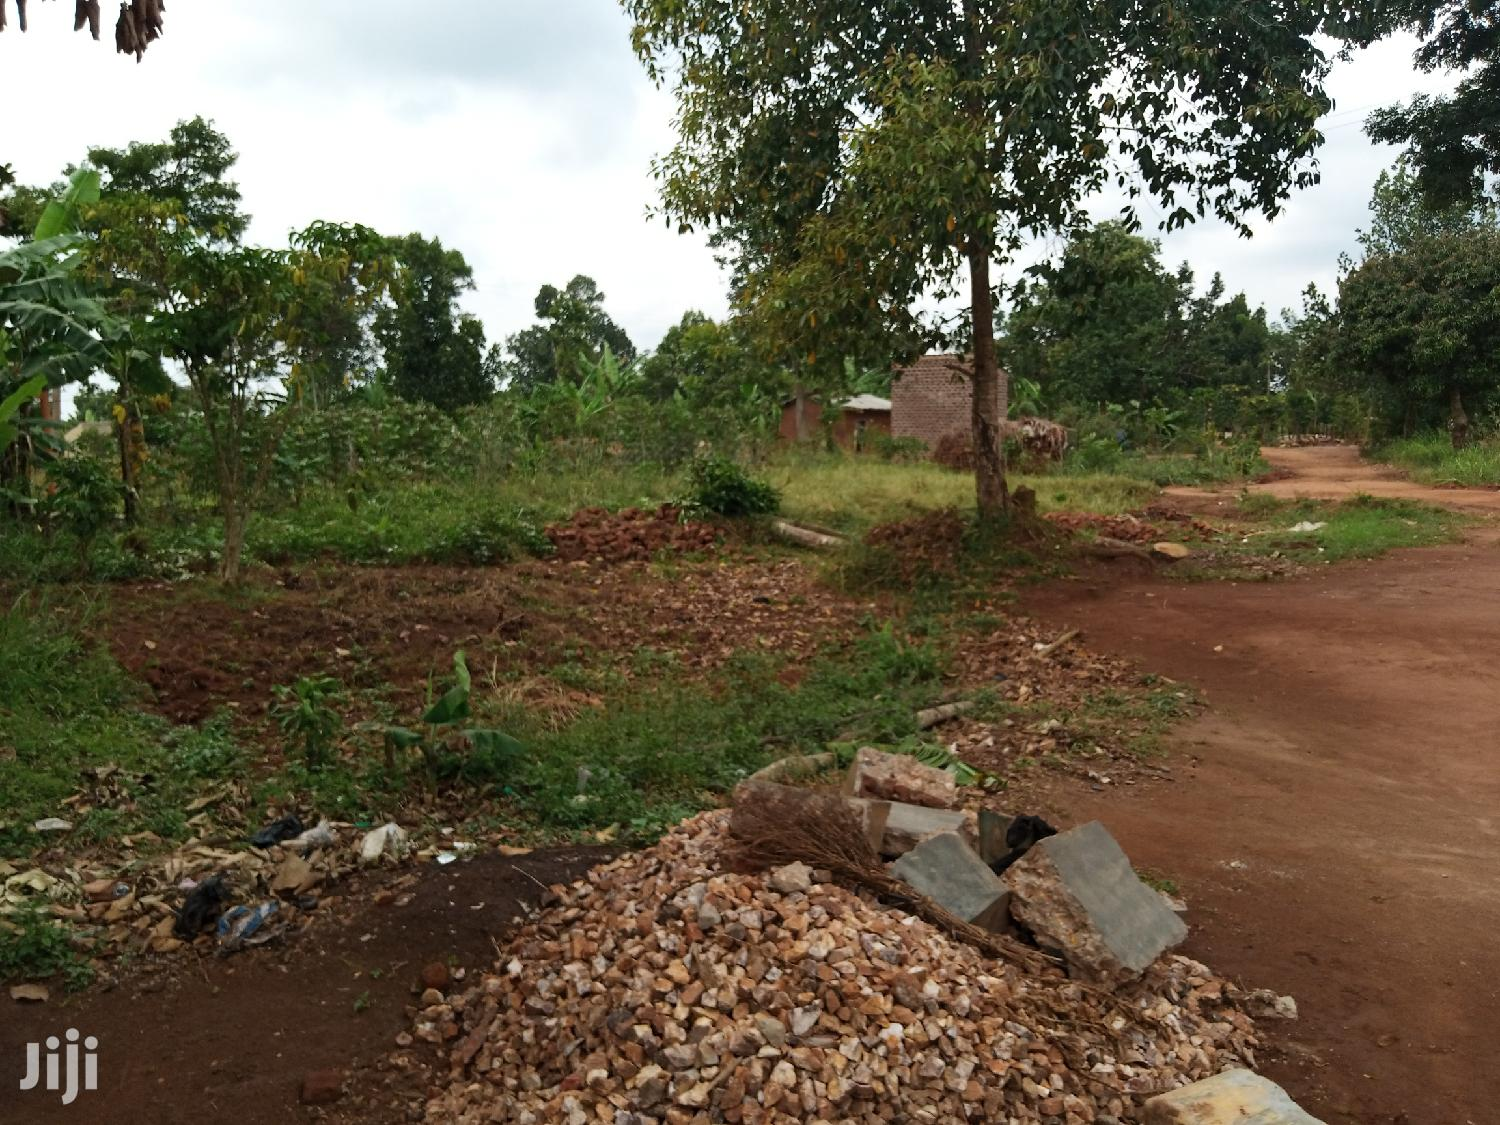 Plots, Land At Bombo Bajjo Town, Fo Kats & DEO SURVEYS LTD | Land & Plots for Rent for sale in Luweero, Central Region, Uganda